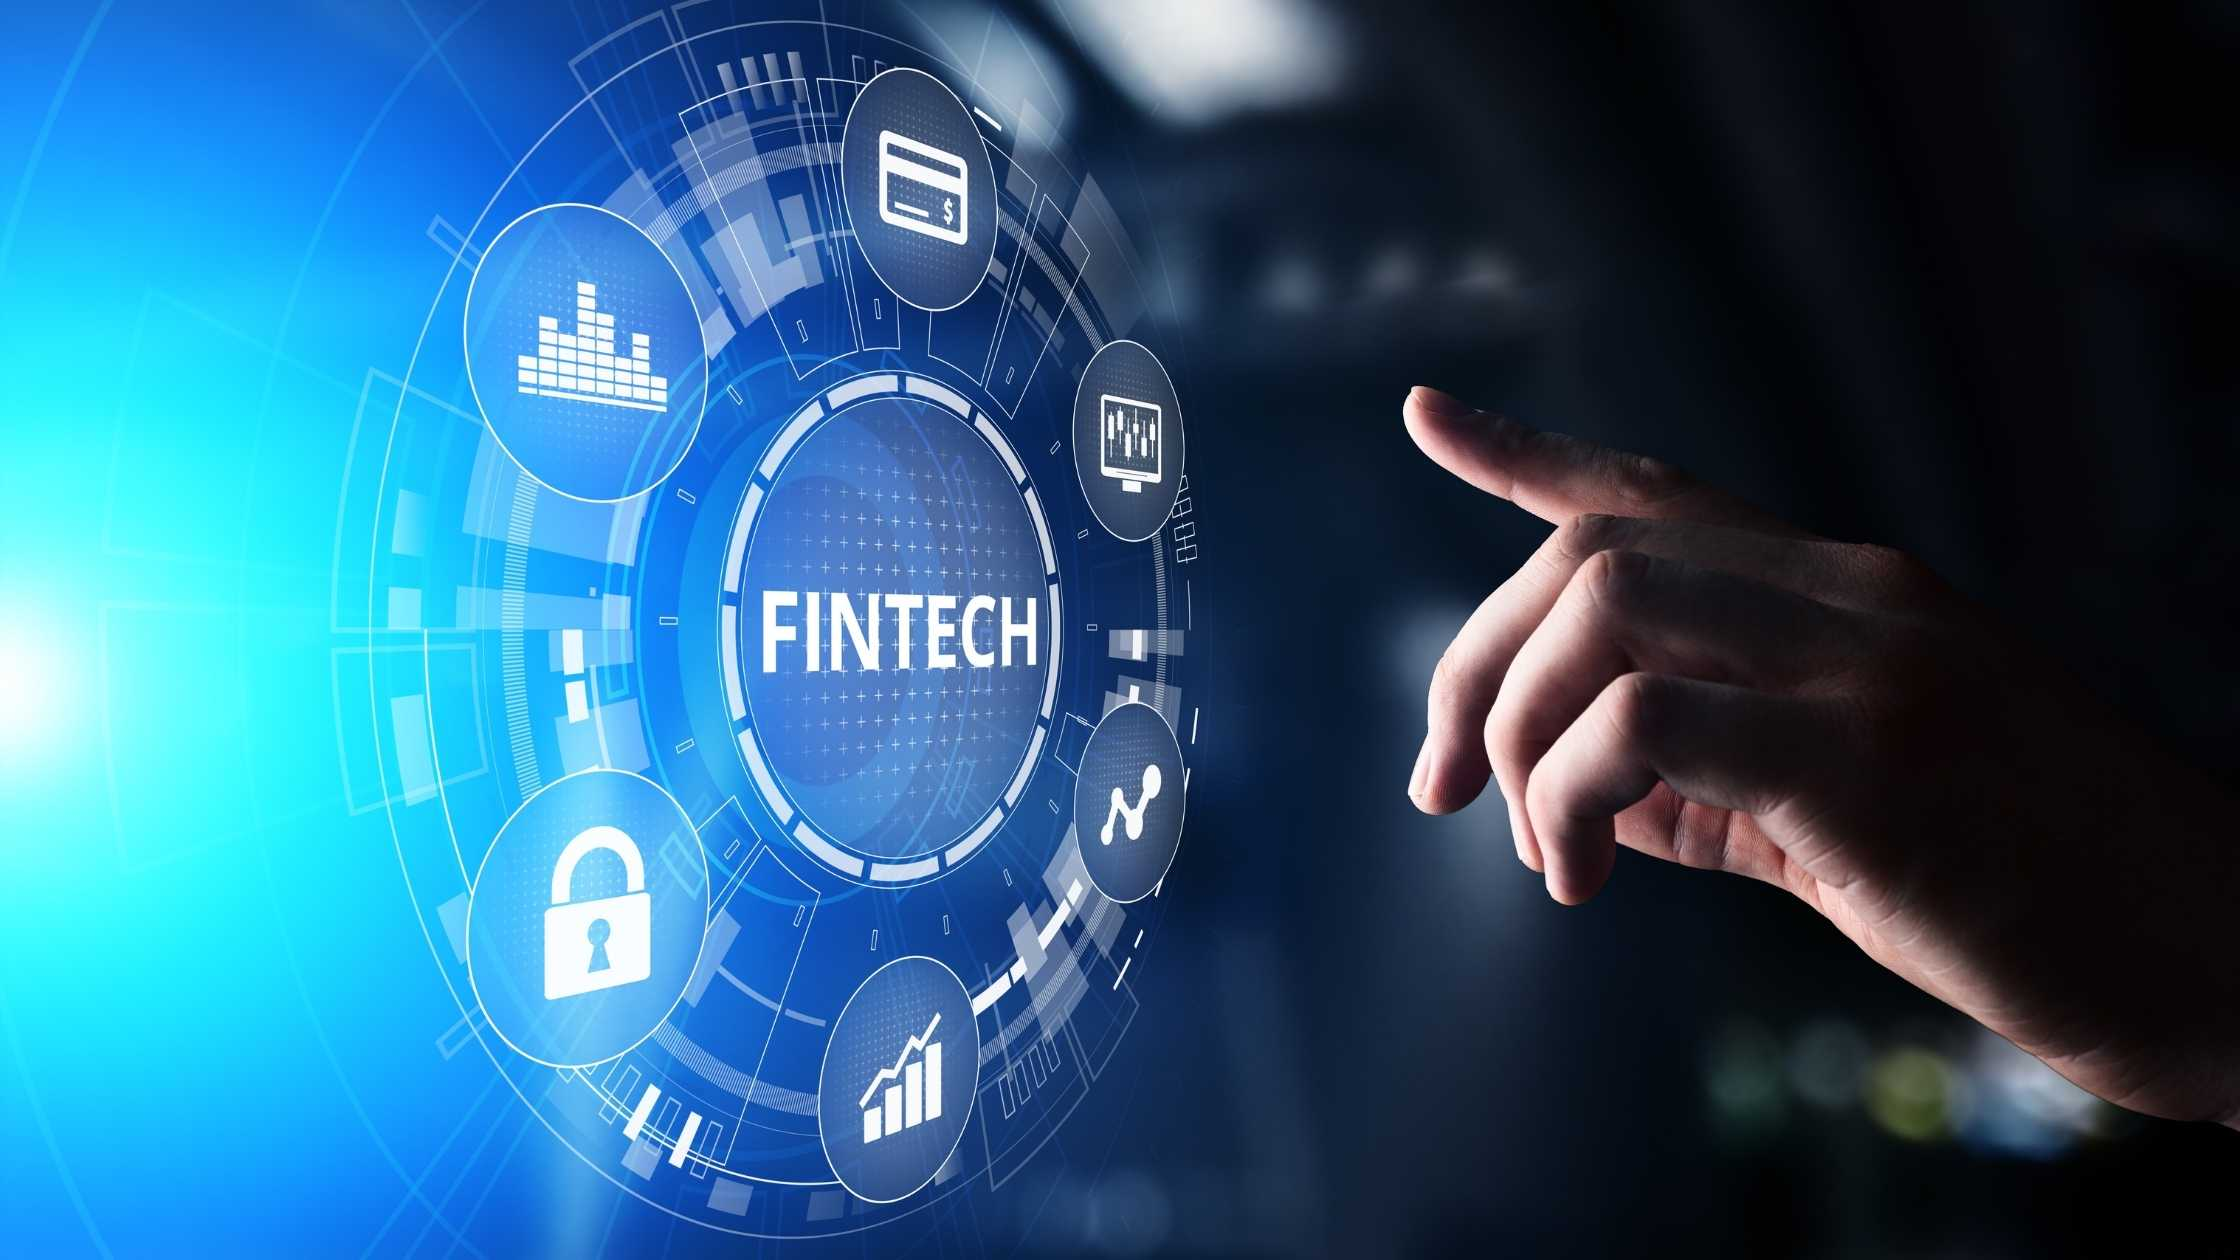 Fintech concept. Fintech illustration with hand reaching out.